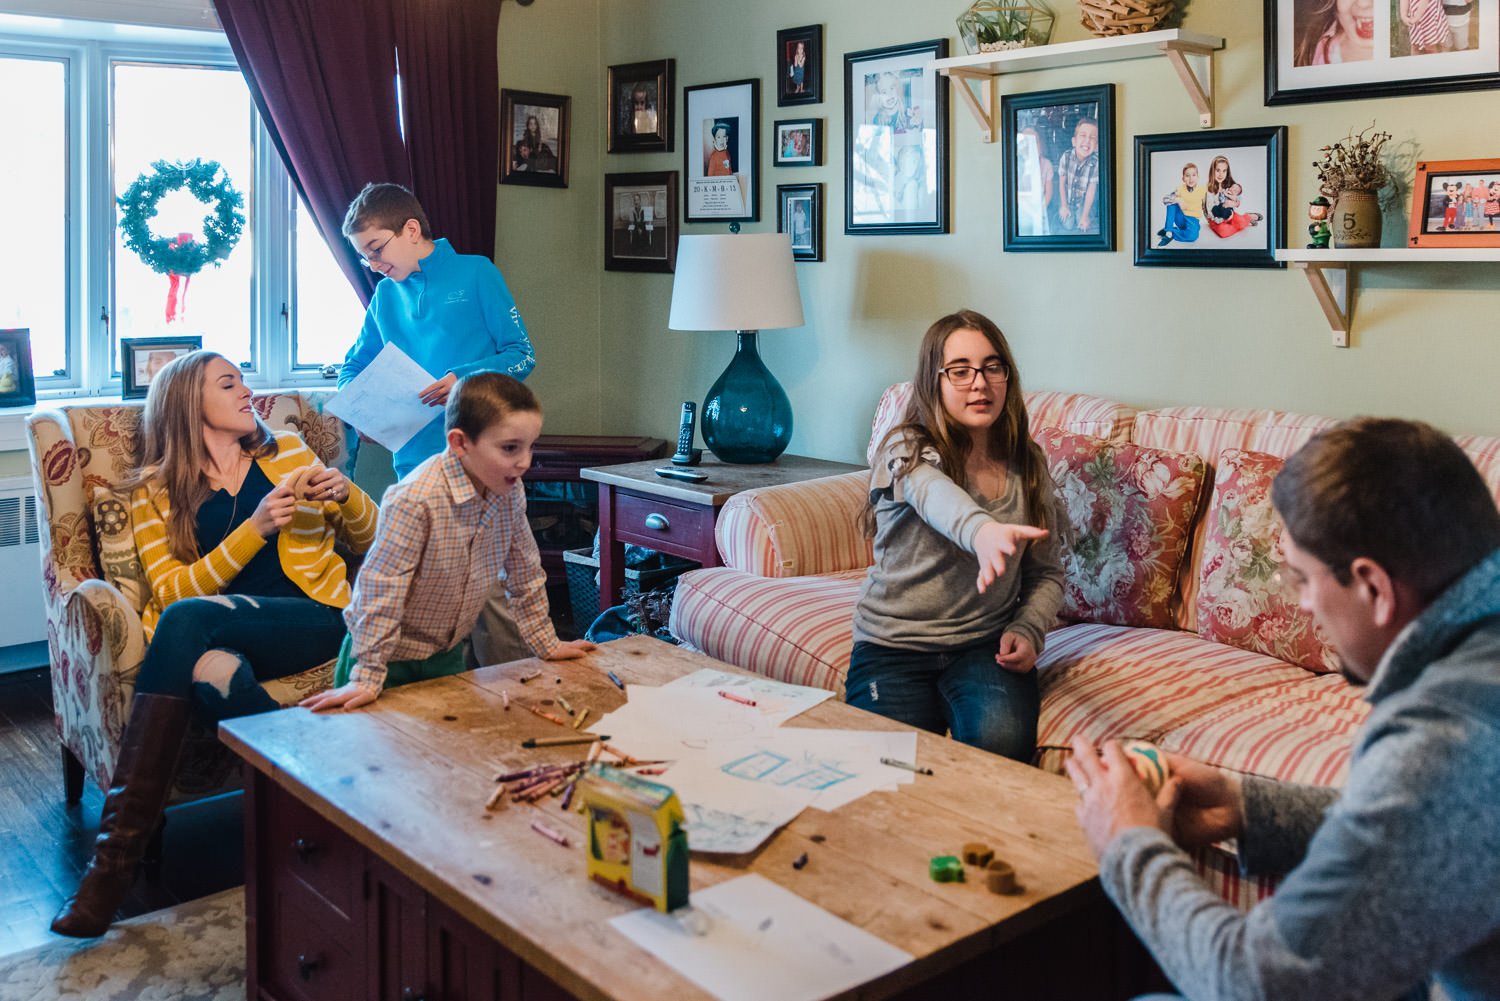 A family hangs out in their living room.